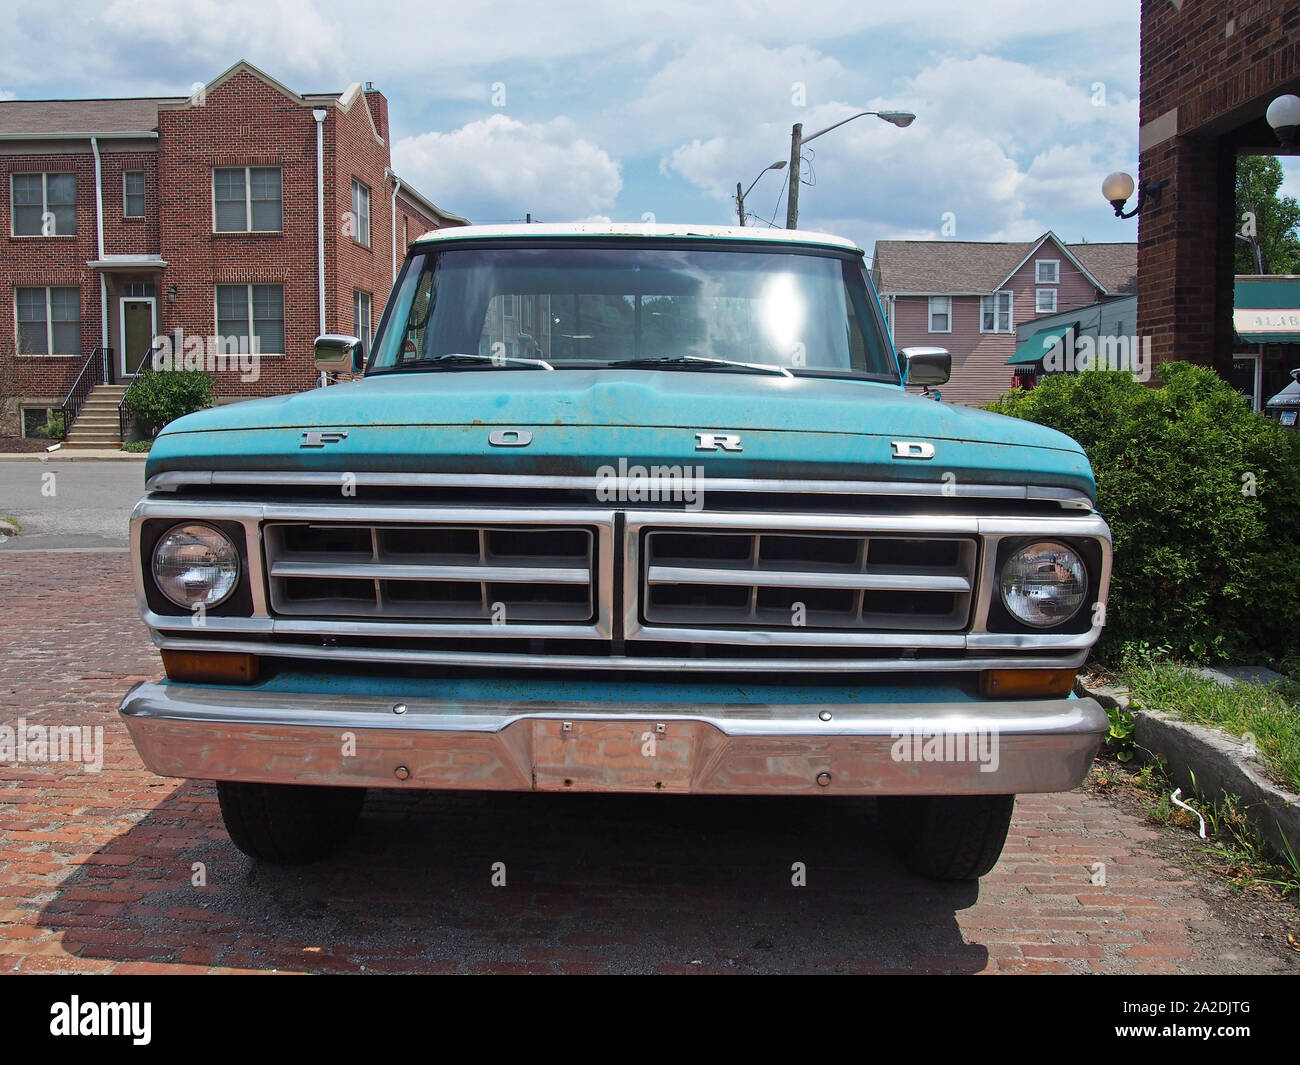 Antique Ford Flatbed Truck Camper Parked Along Historic 10th Street In Indianapolis Indiana Usa July 26 2019 C Katharine Andriotis Stock Photo Alamy